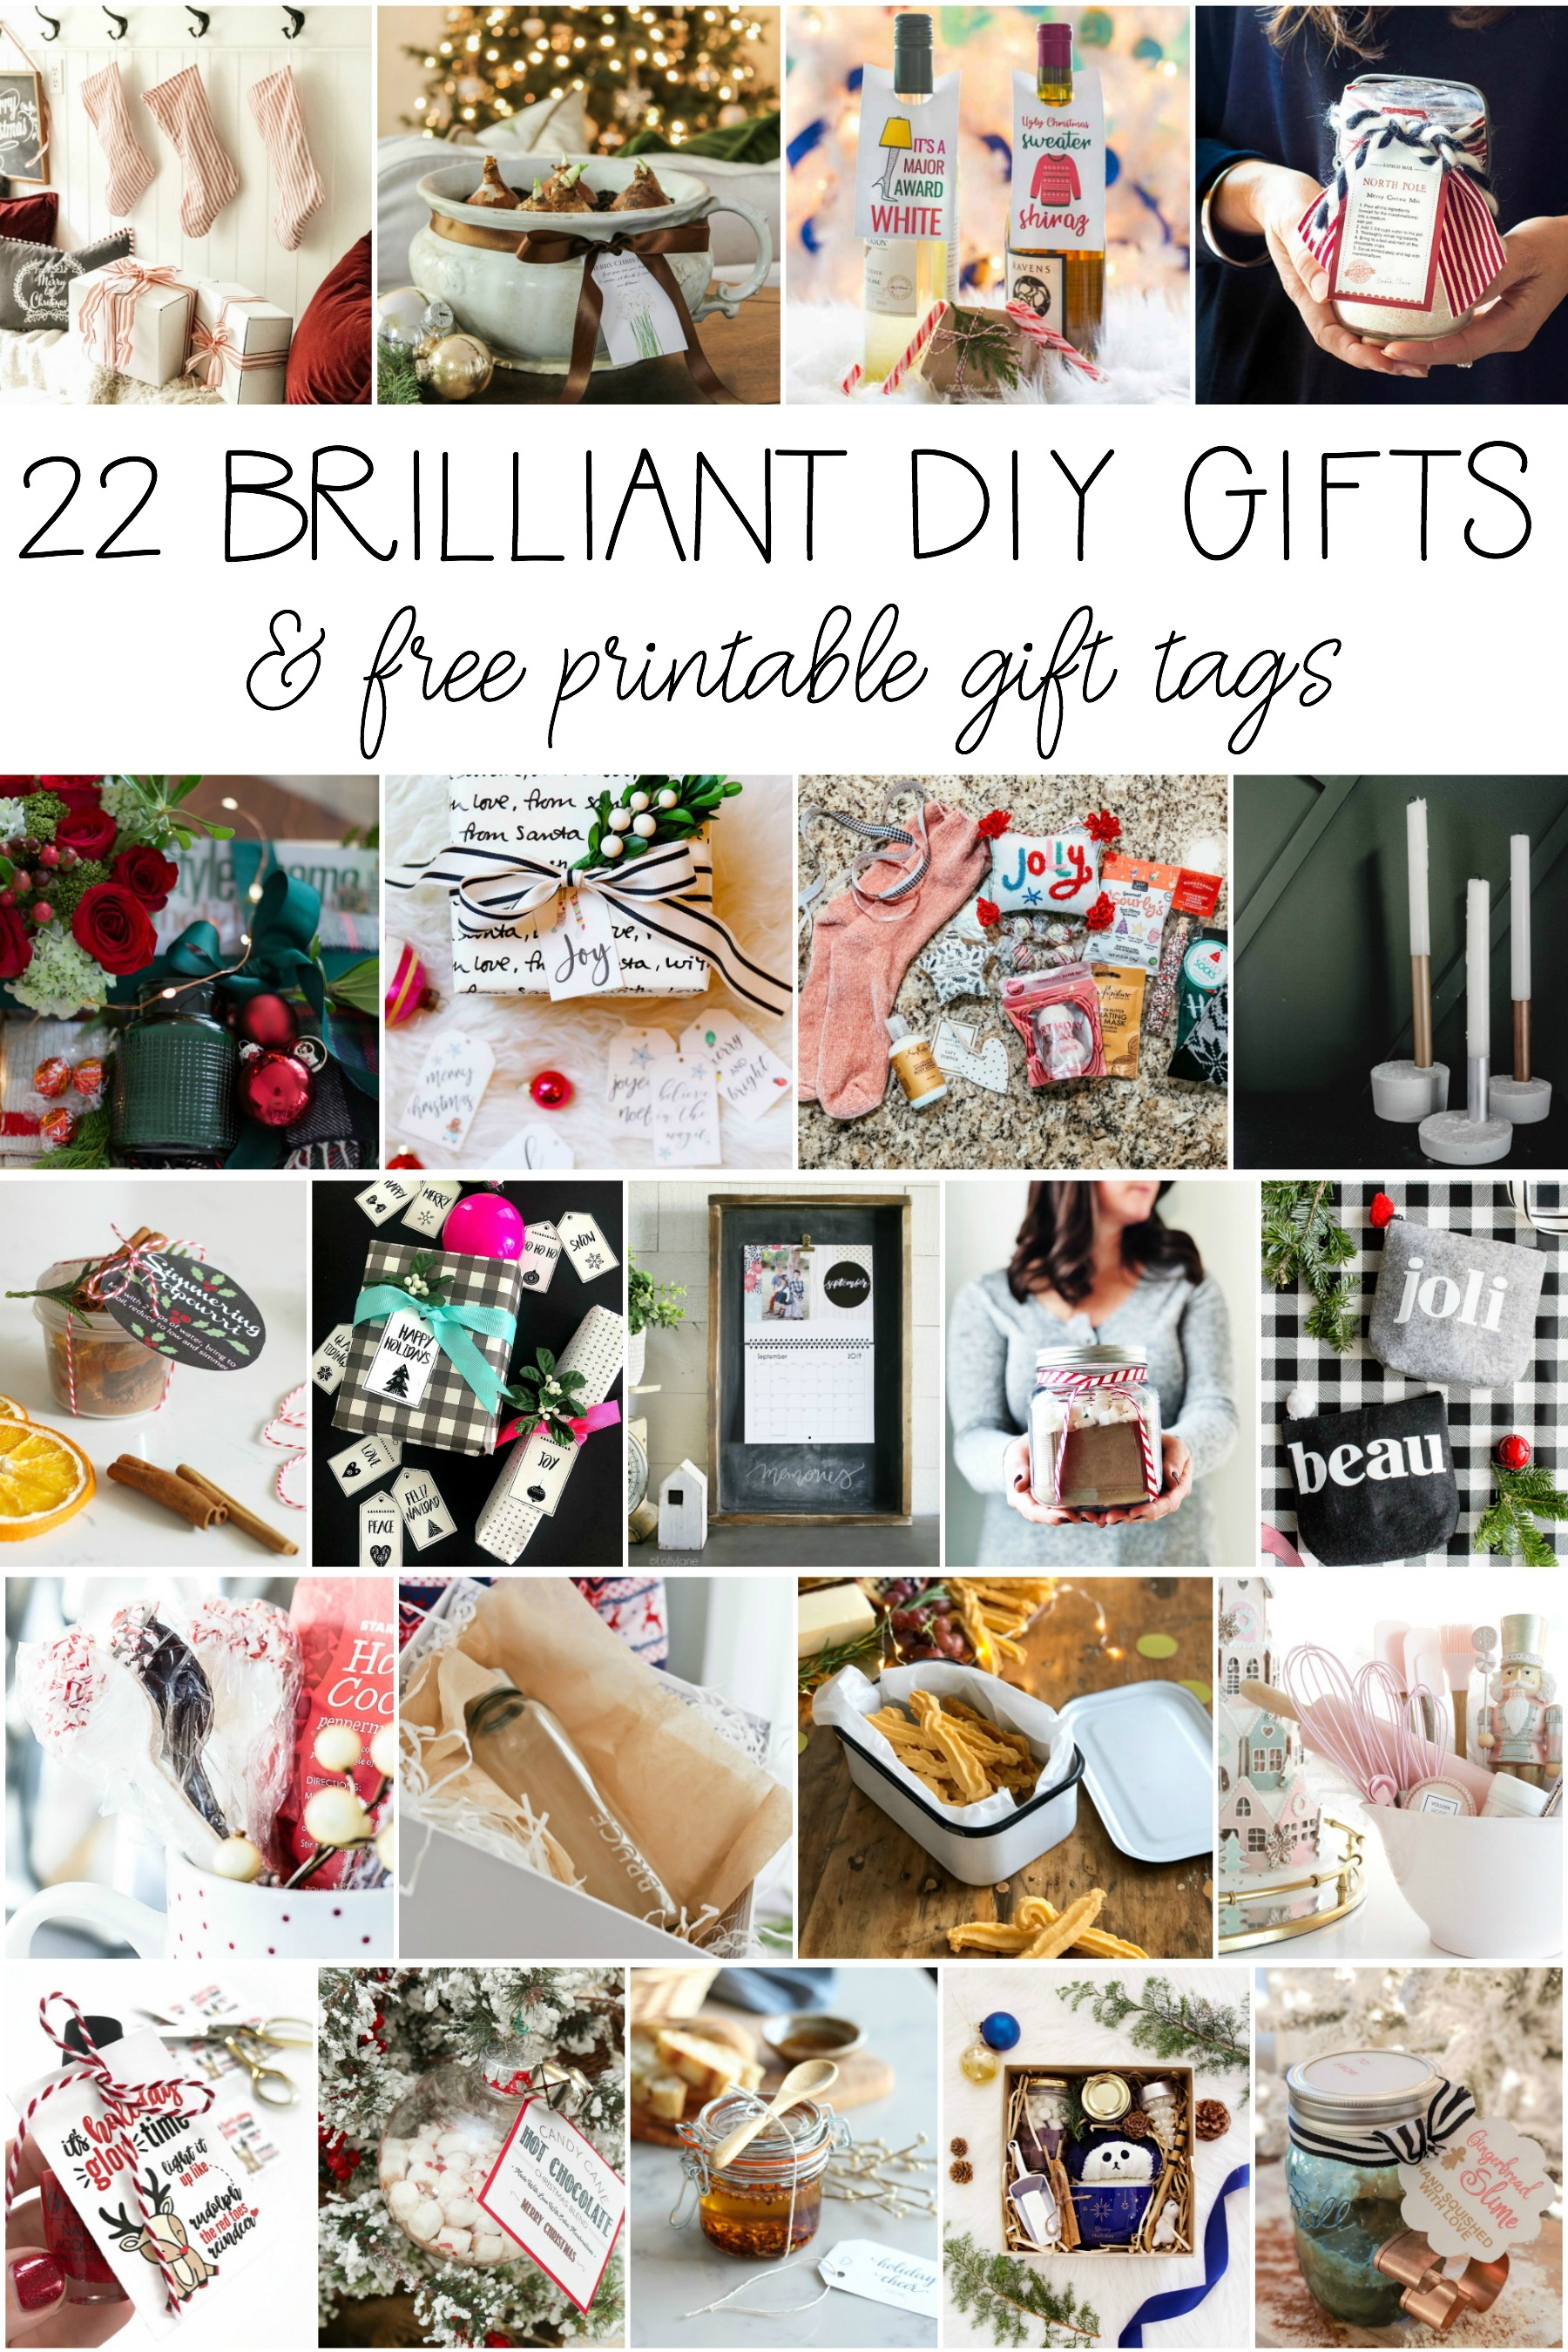 22 brilliant diy gift ideas for the holidays many with free printable gift tags